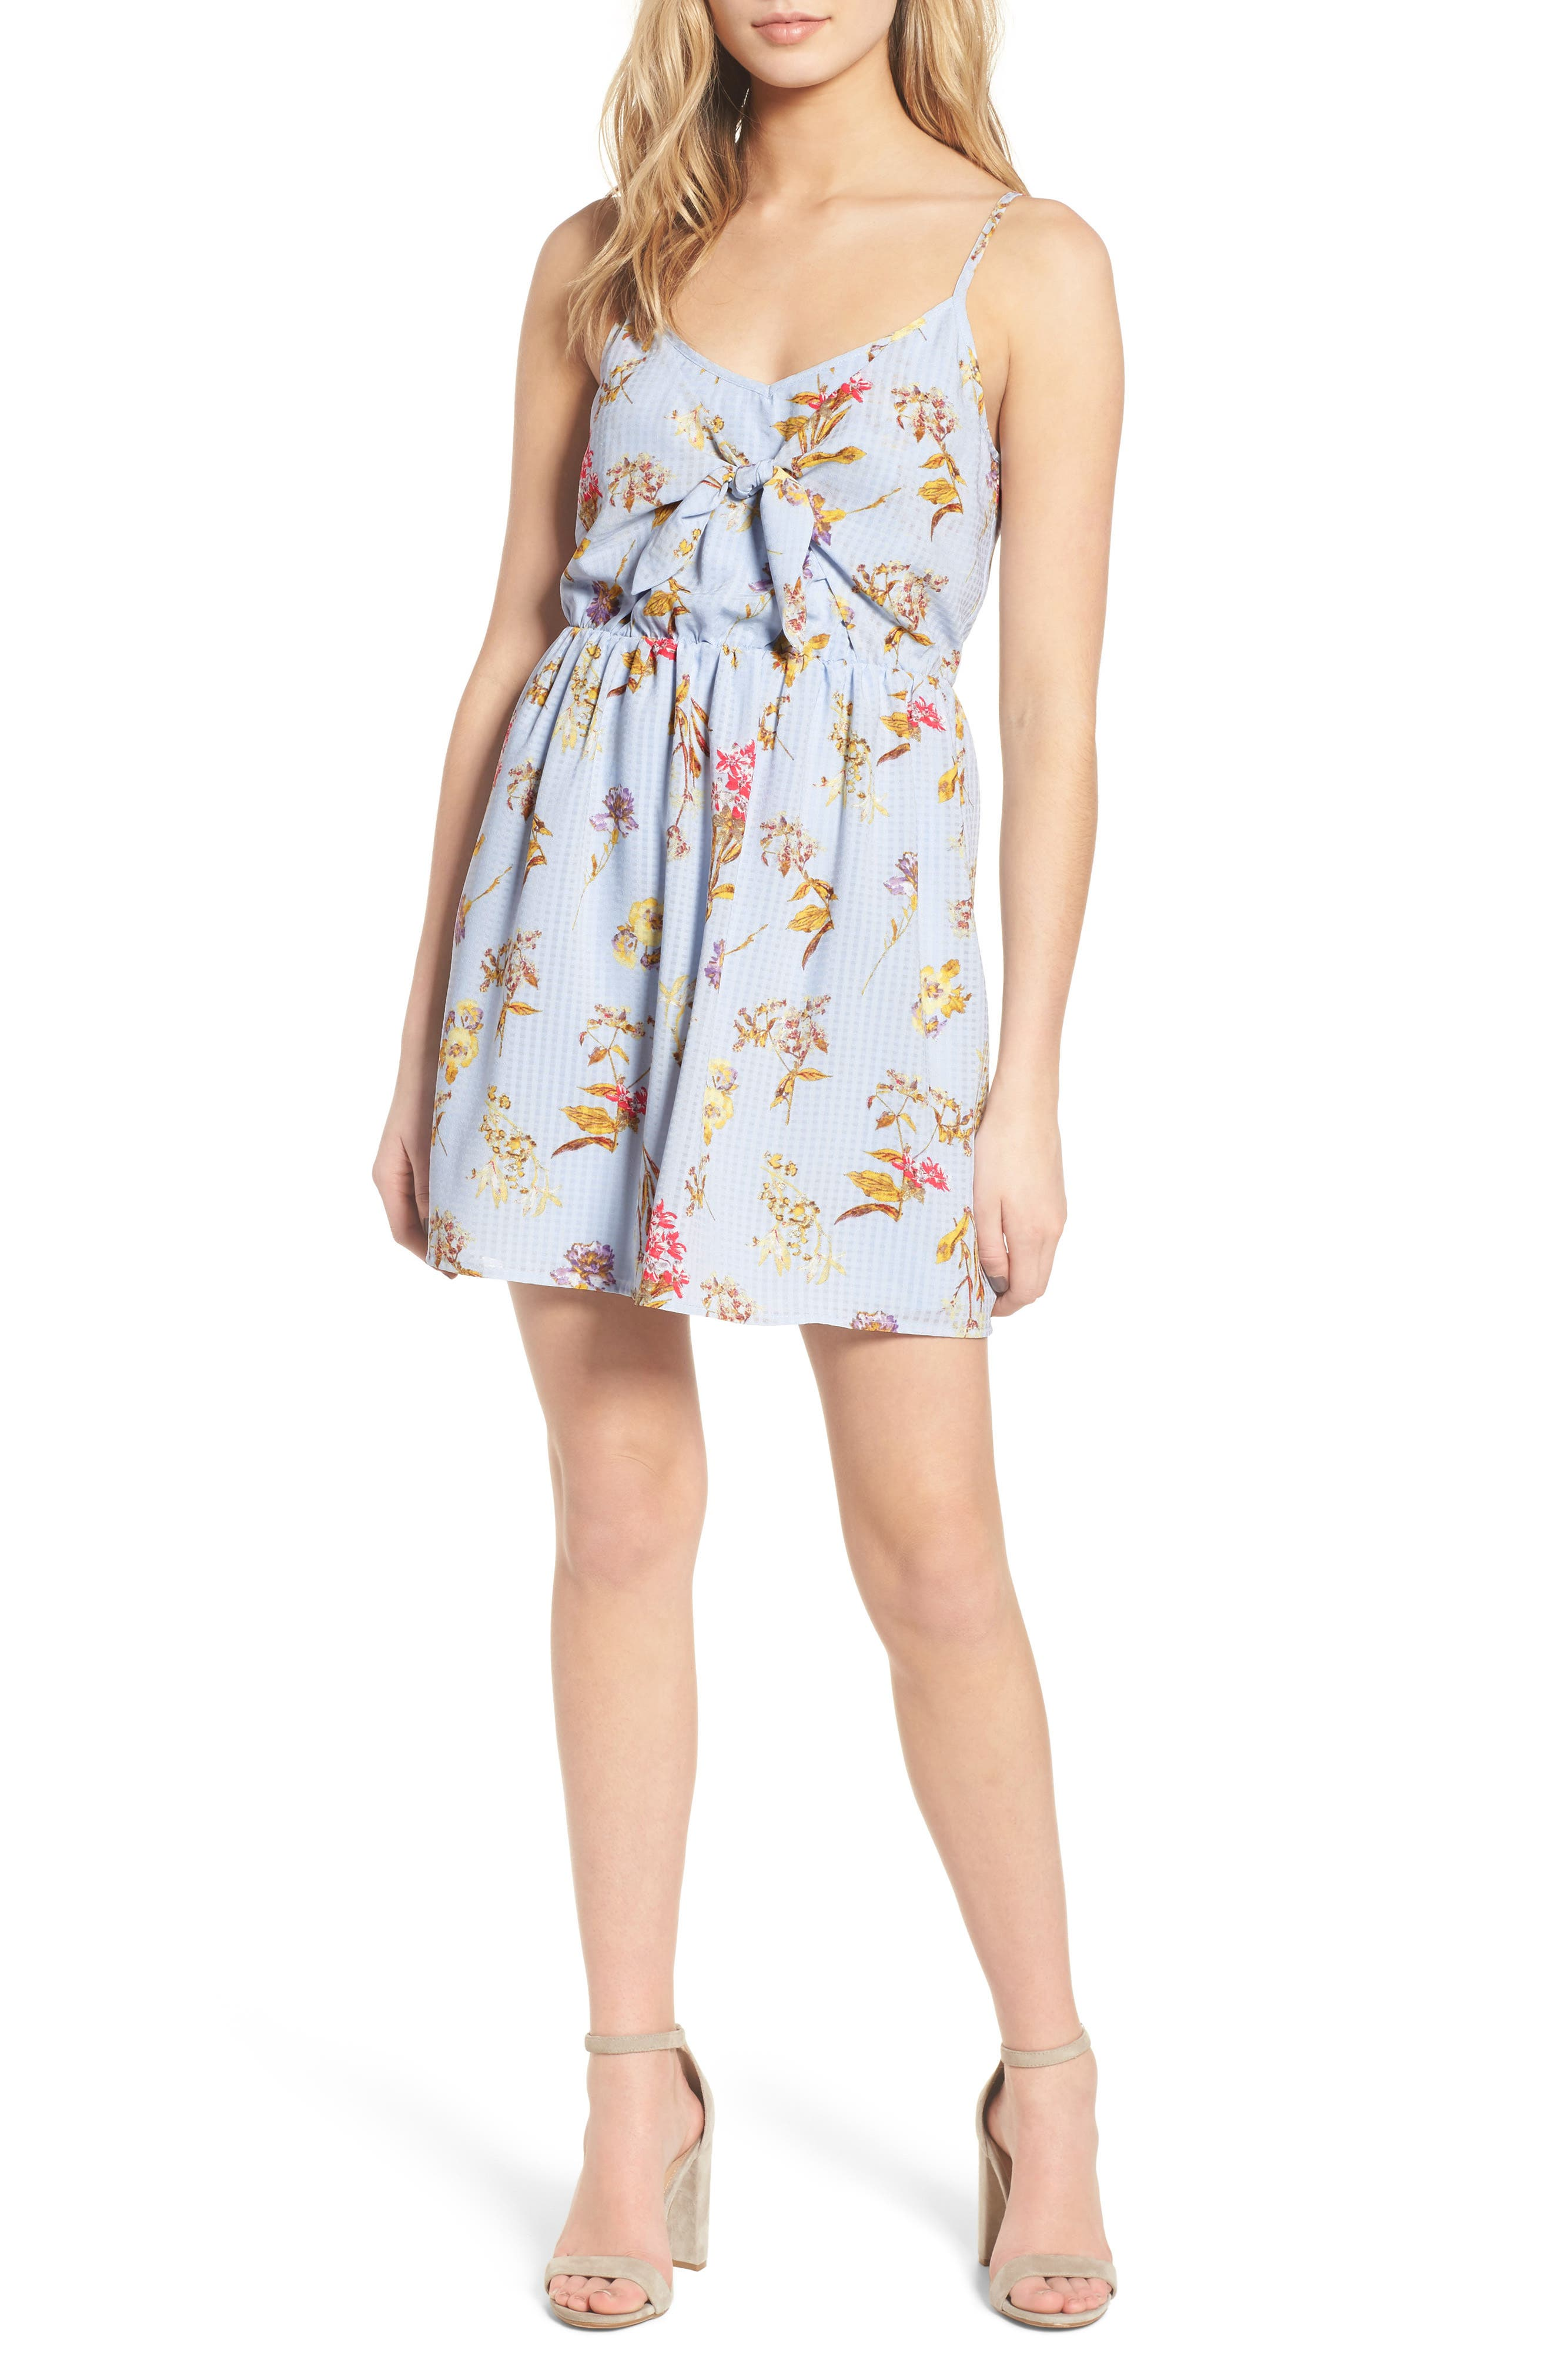 Main Image - Speechless Floral Tie Front Dress